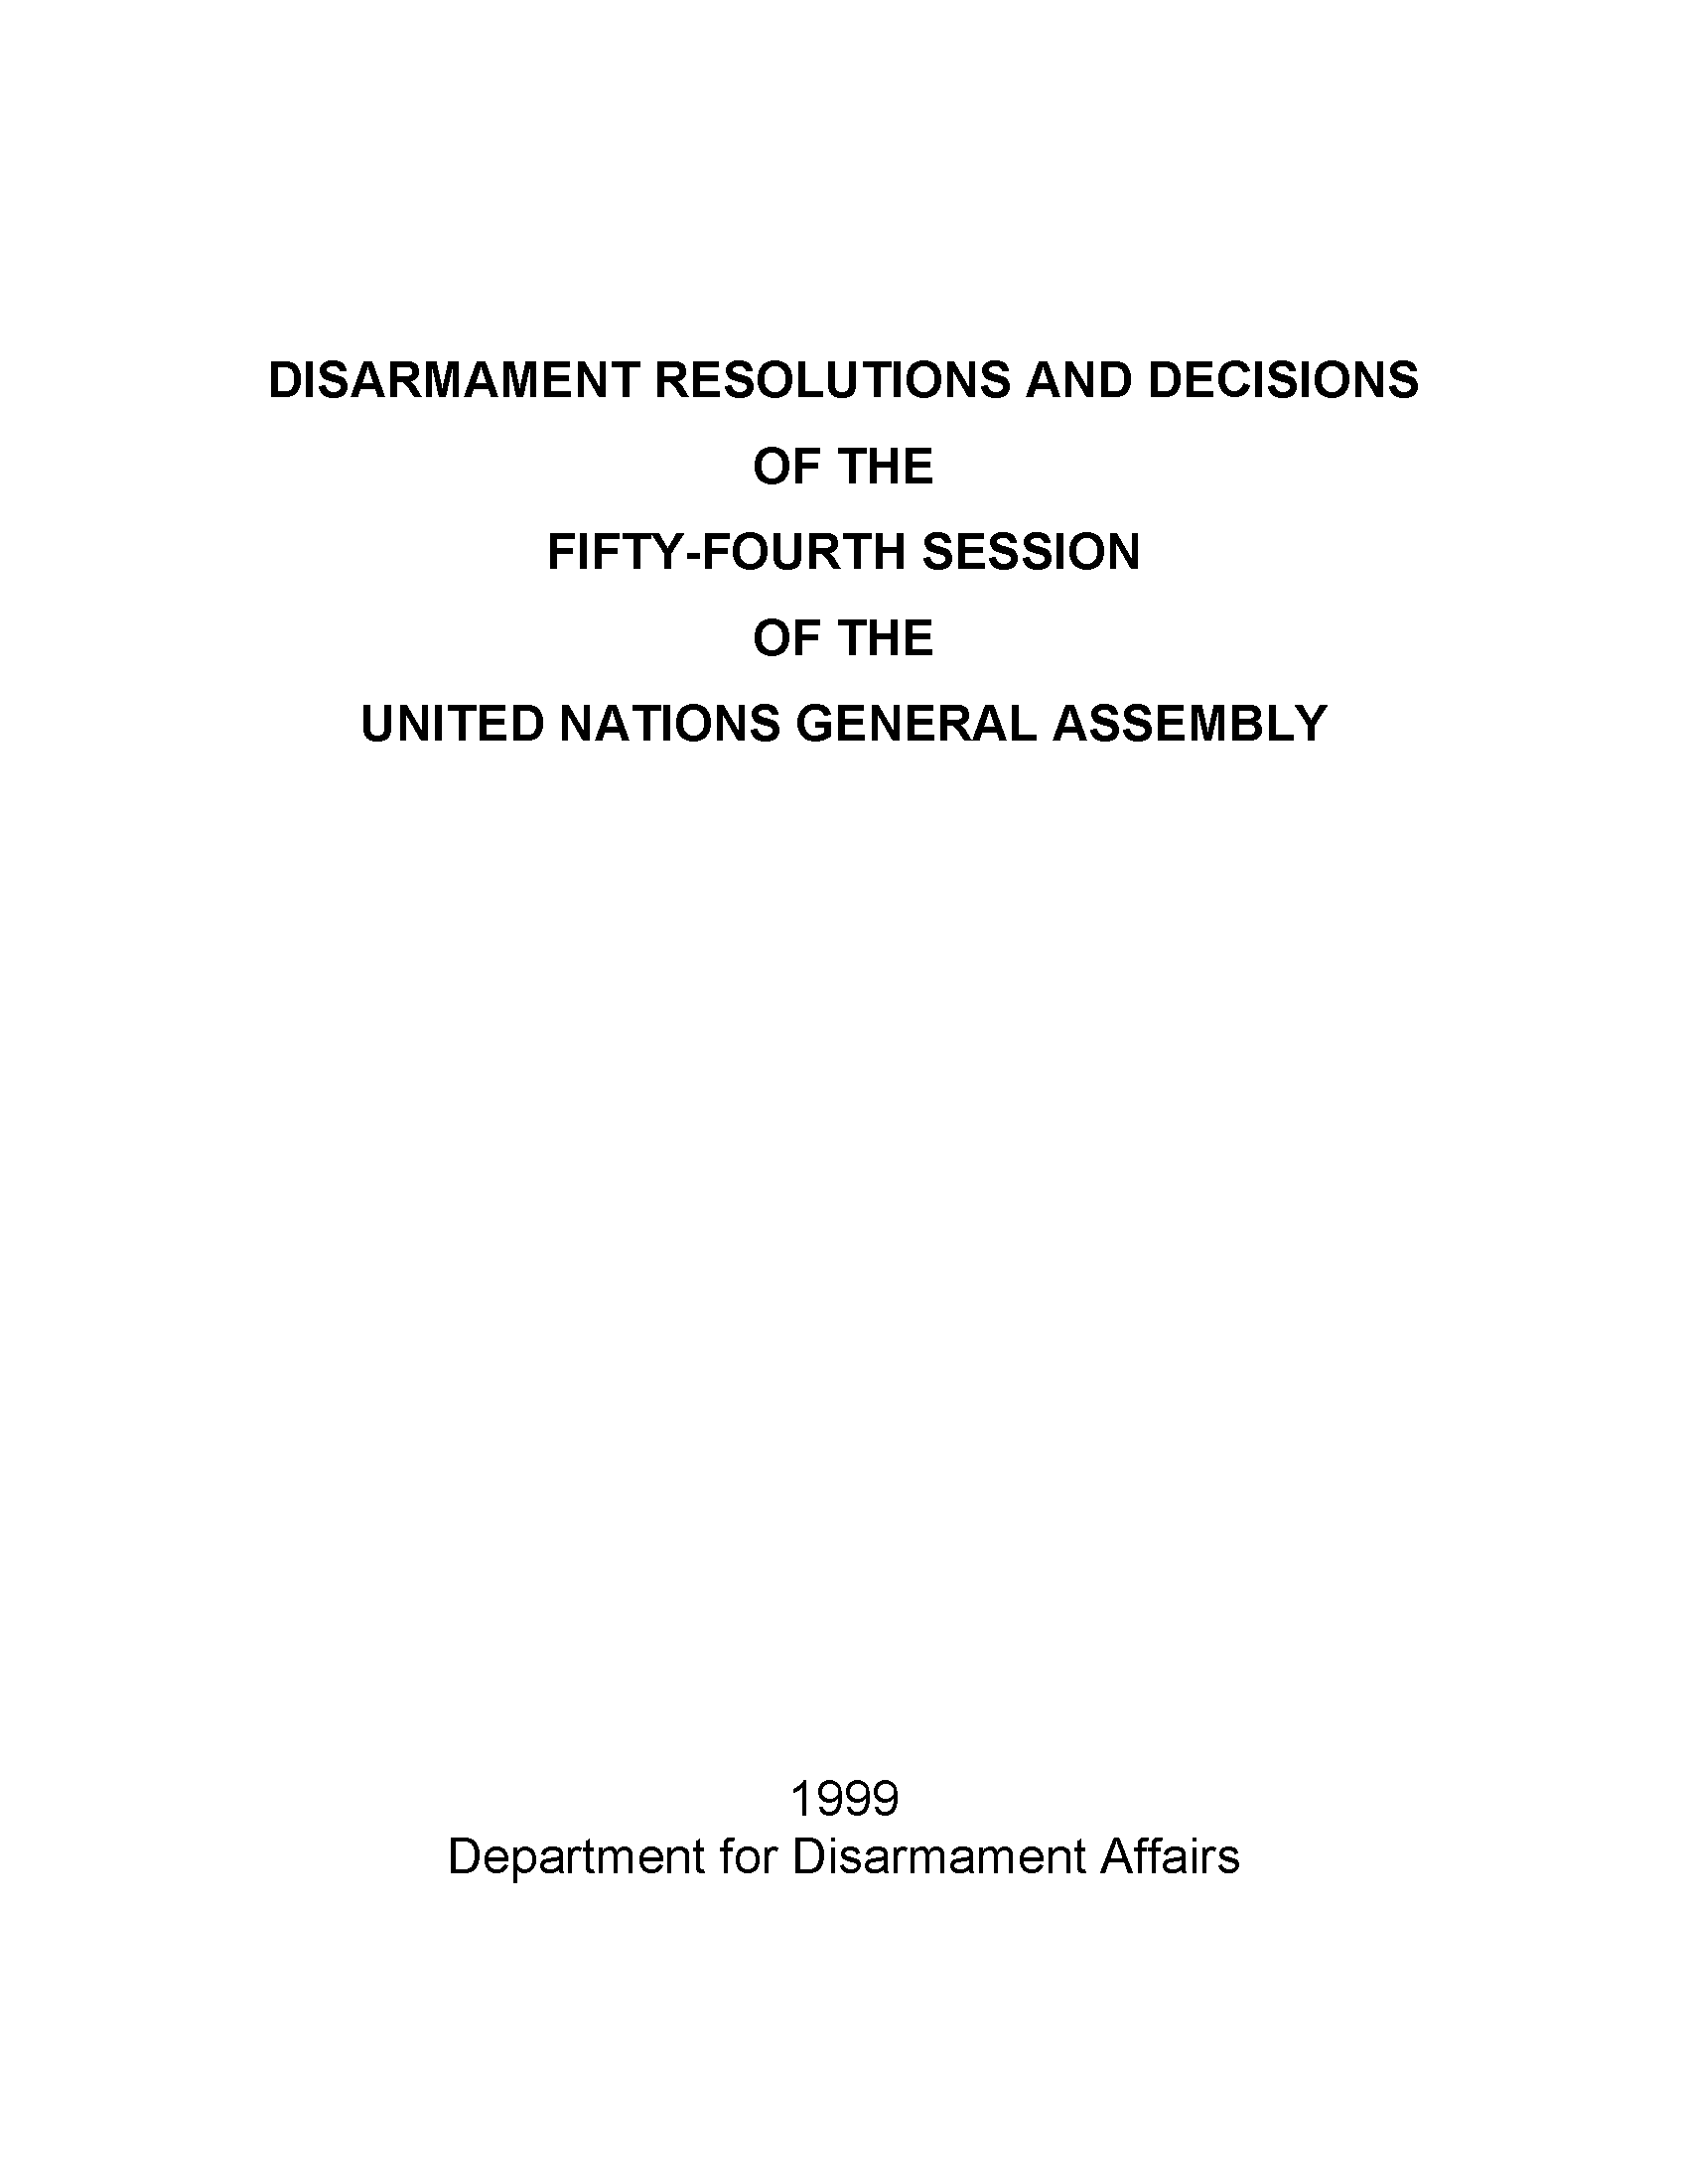 Disarmament Resolutions and Decisions of the Fifty-fourth Session of the United Nations General Assembly, 1999